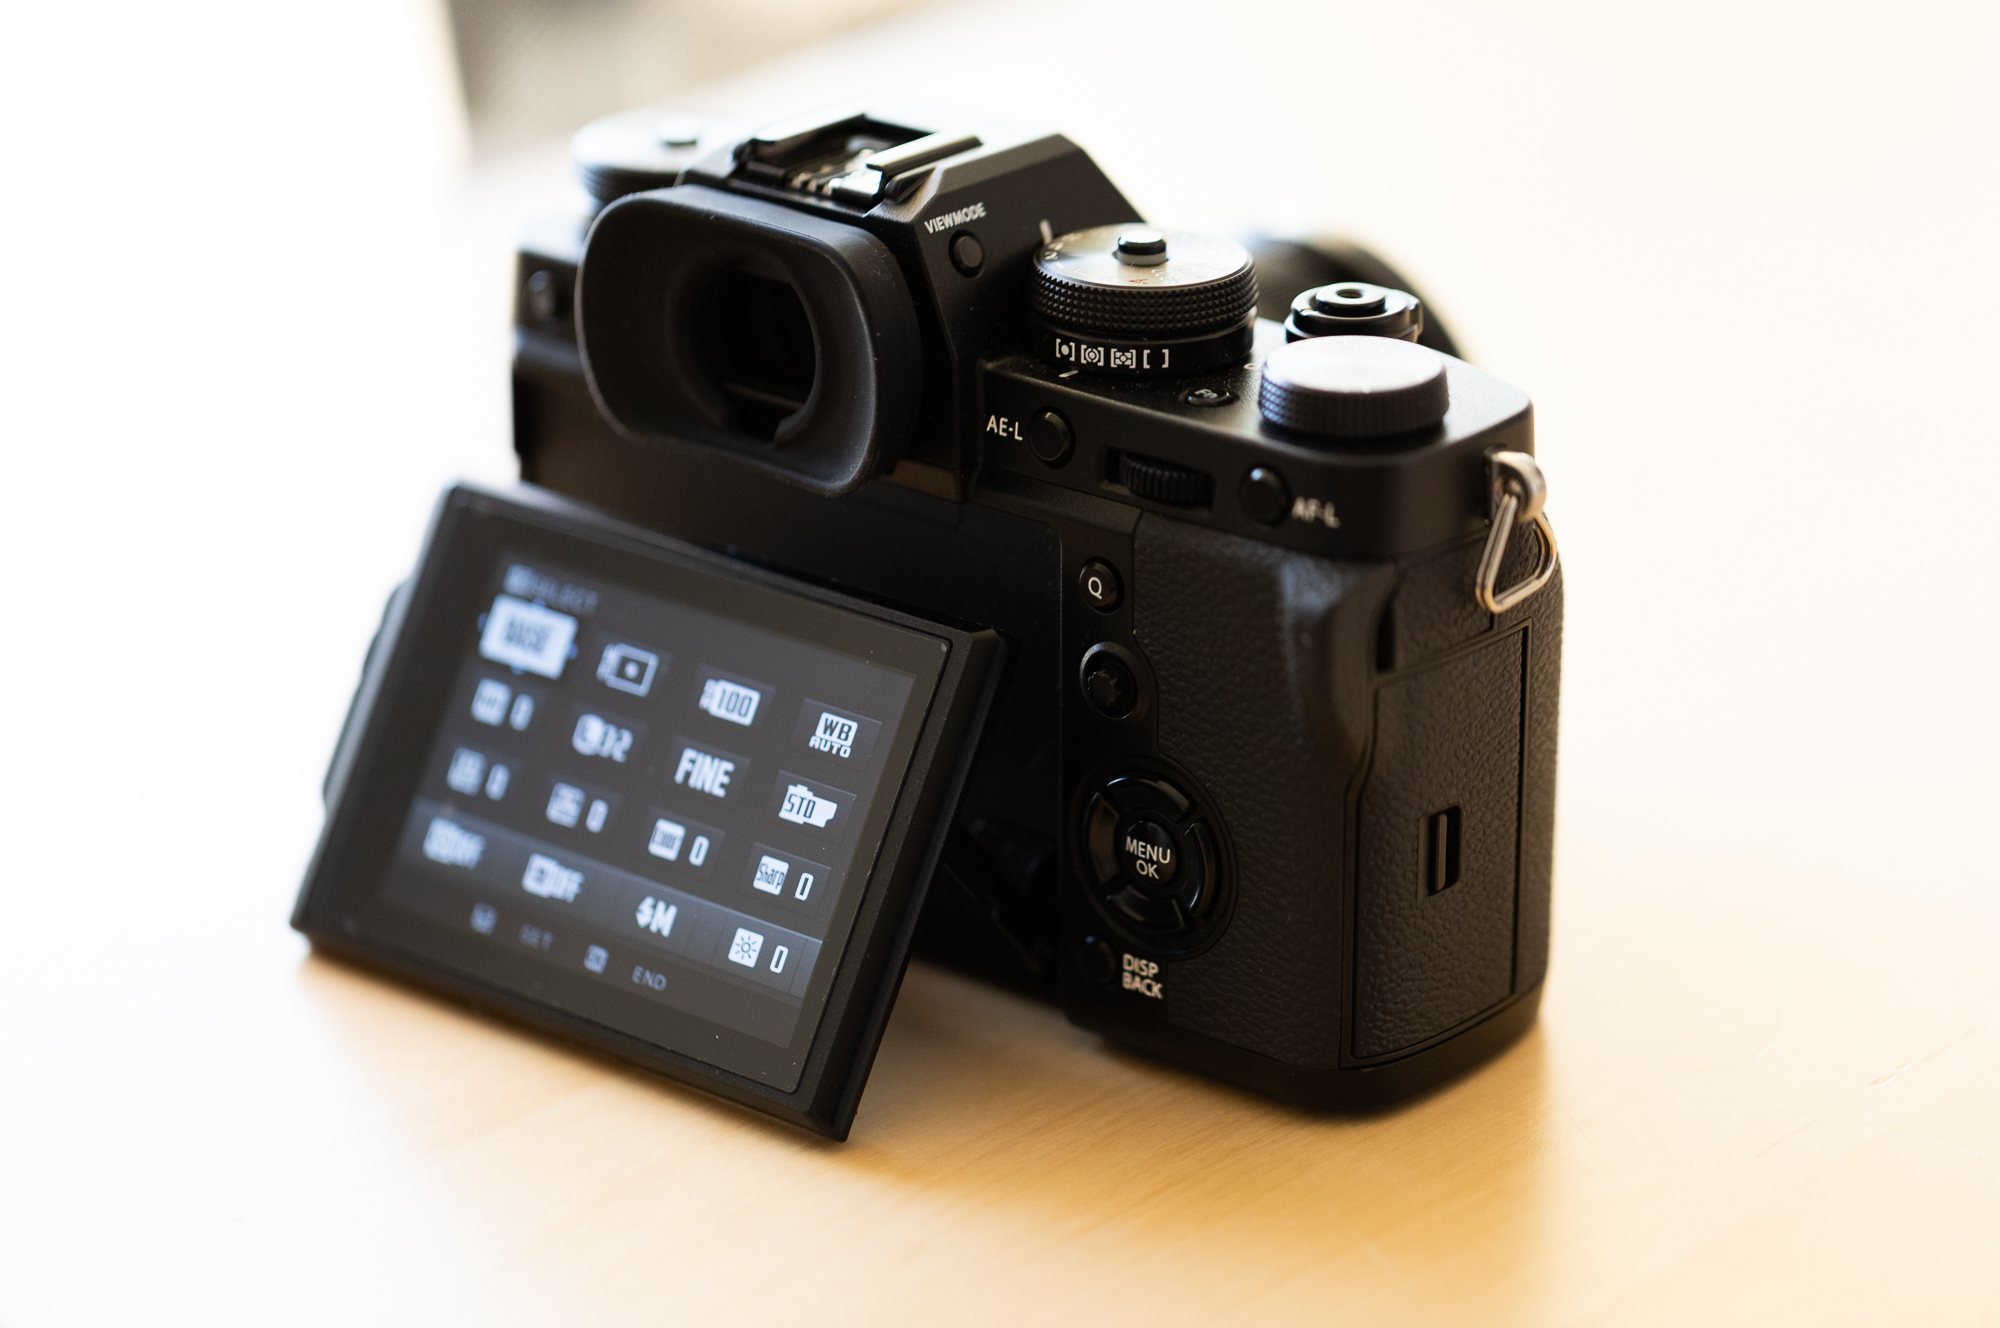 Fuji X-T3 Review and Rentals